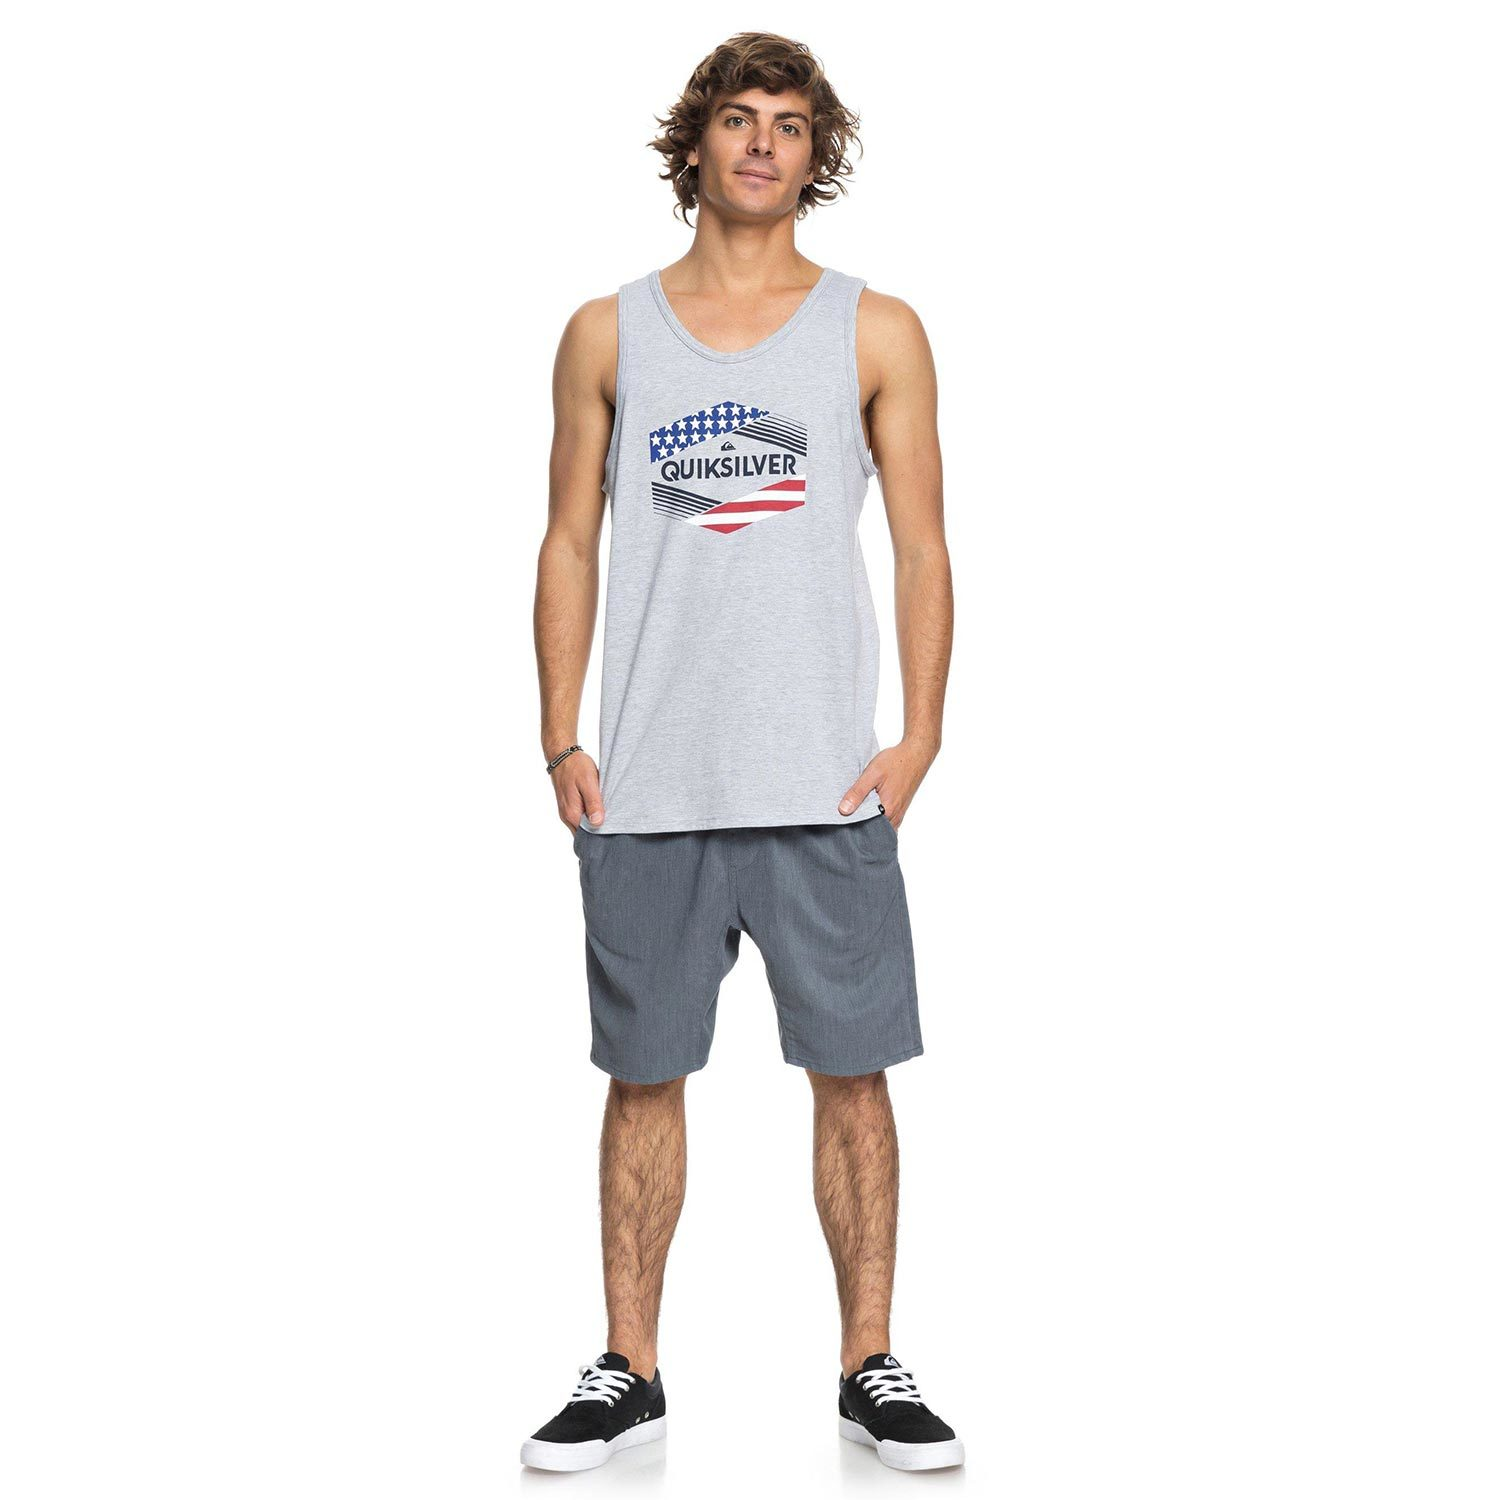 6cf242b0dbbdc QUIKSILVER Men s Stars   Stripes Tank Top